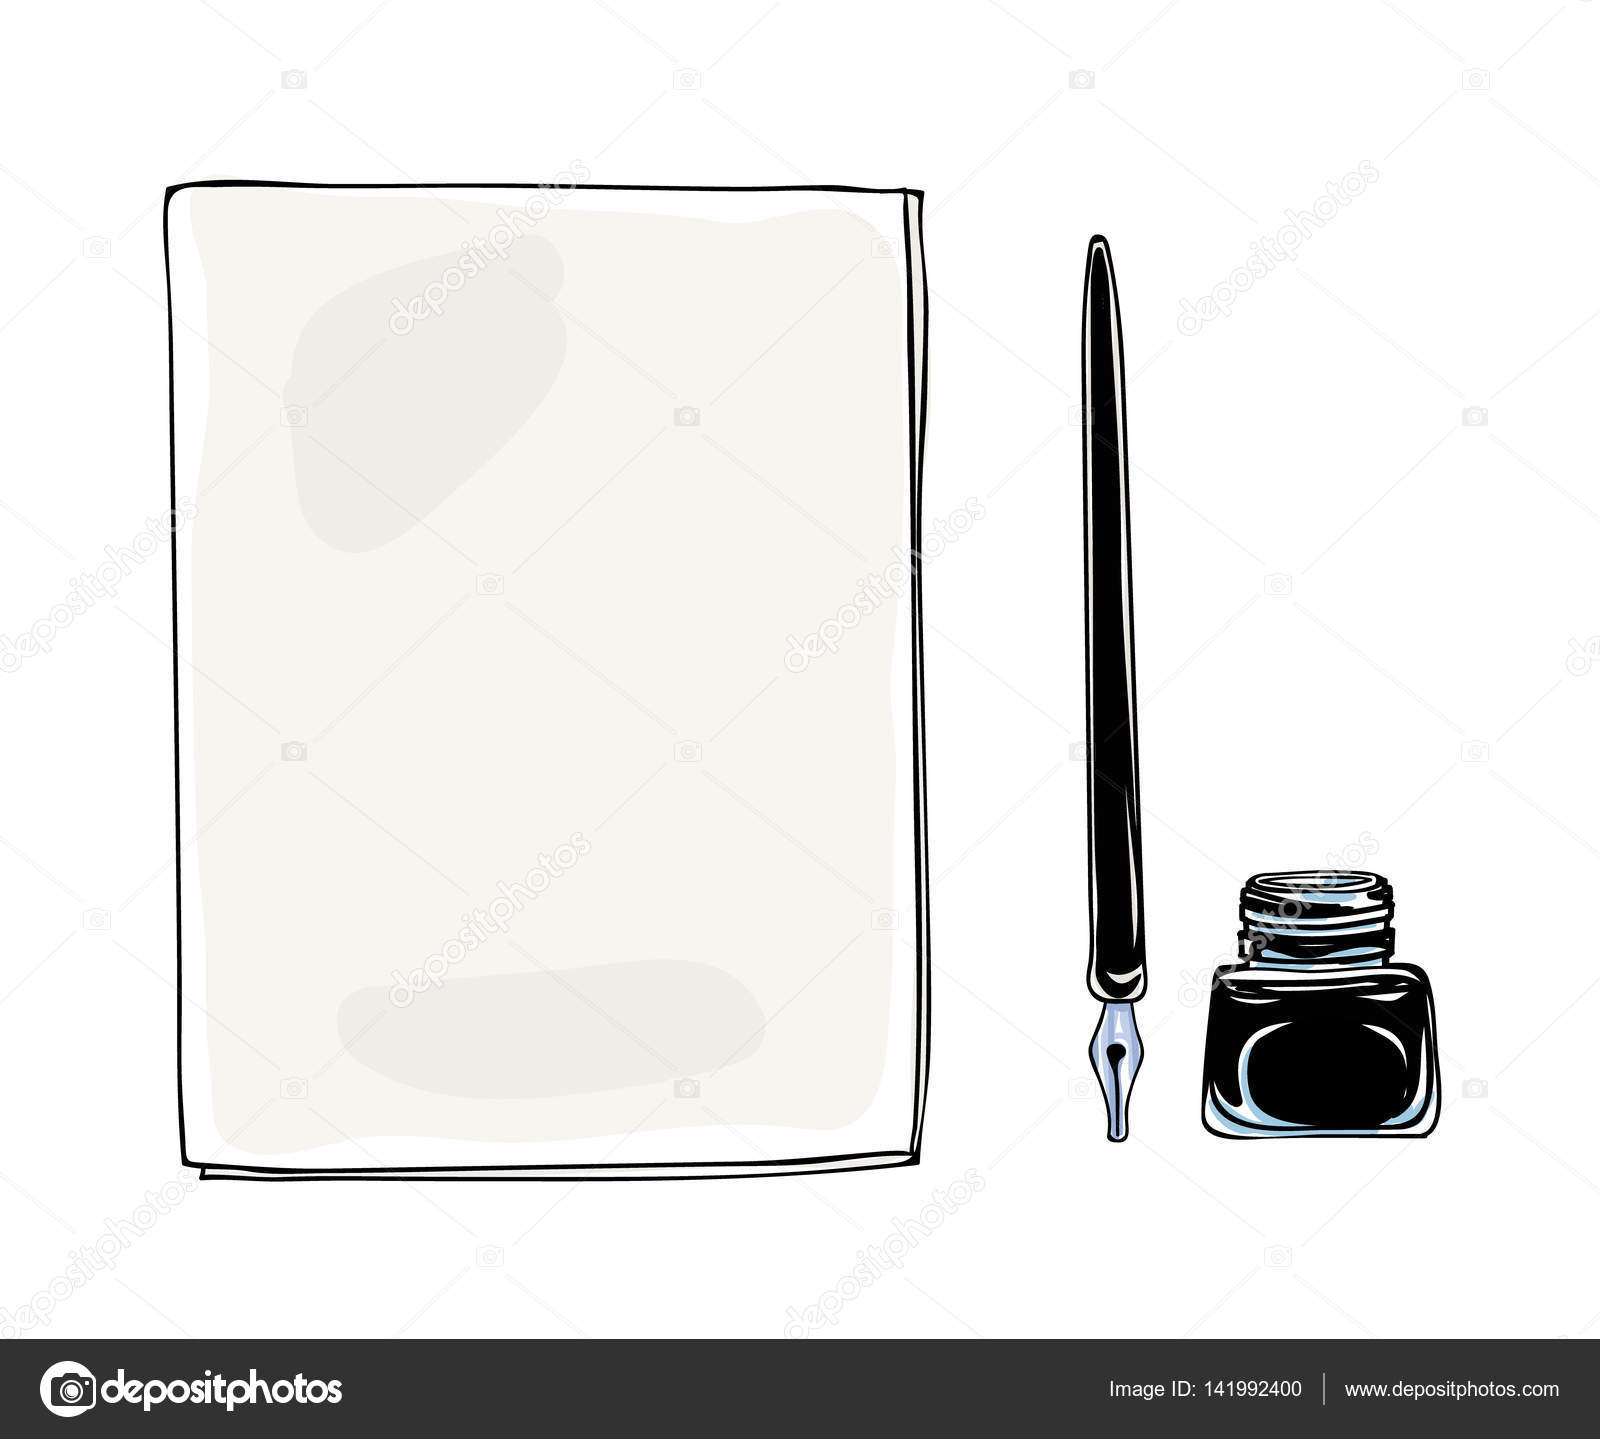 Drawn pen vintage Pen drawn vintage hand and